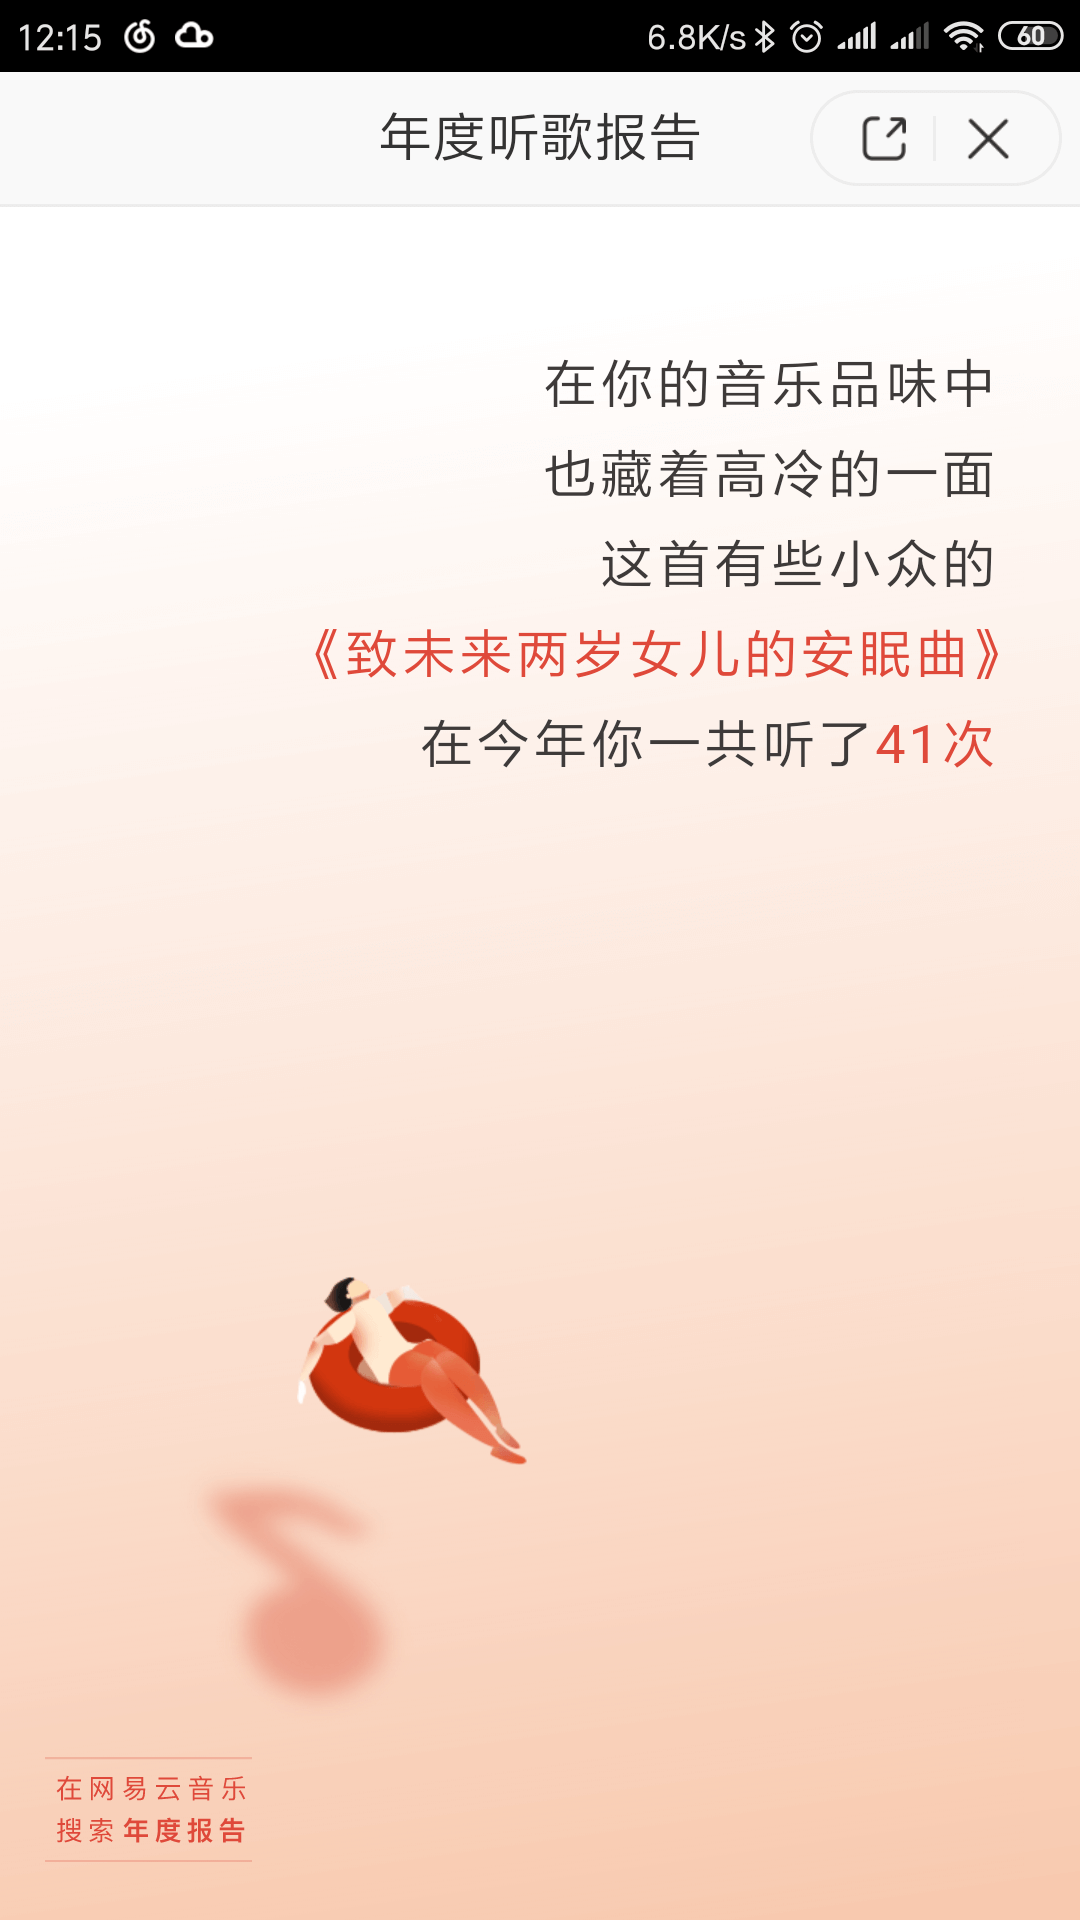 Screenshot_2019-01-04-12-15-40-013_com.netease.cloudmusic.png